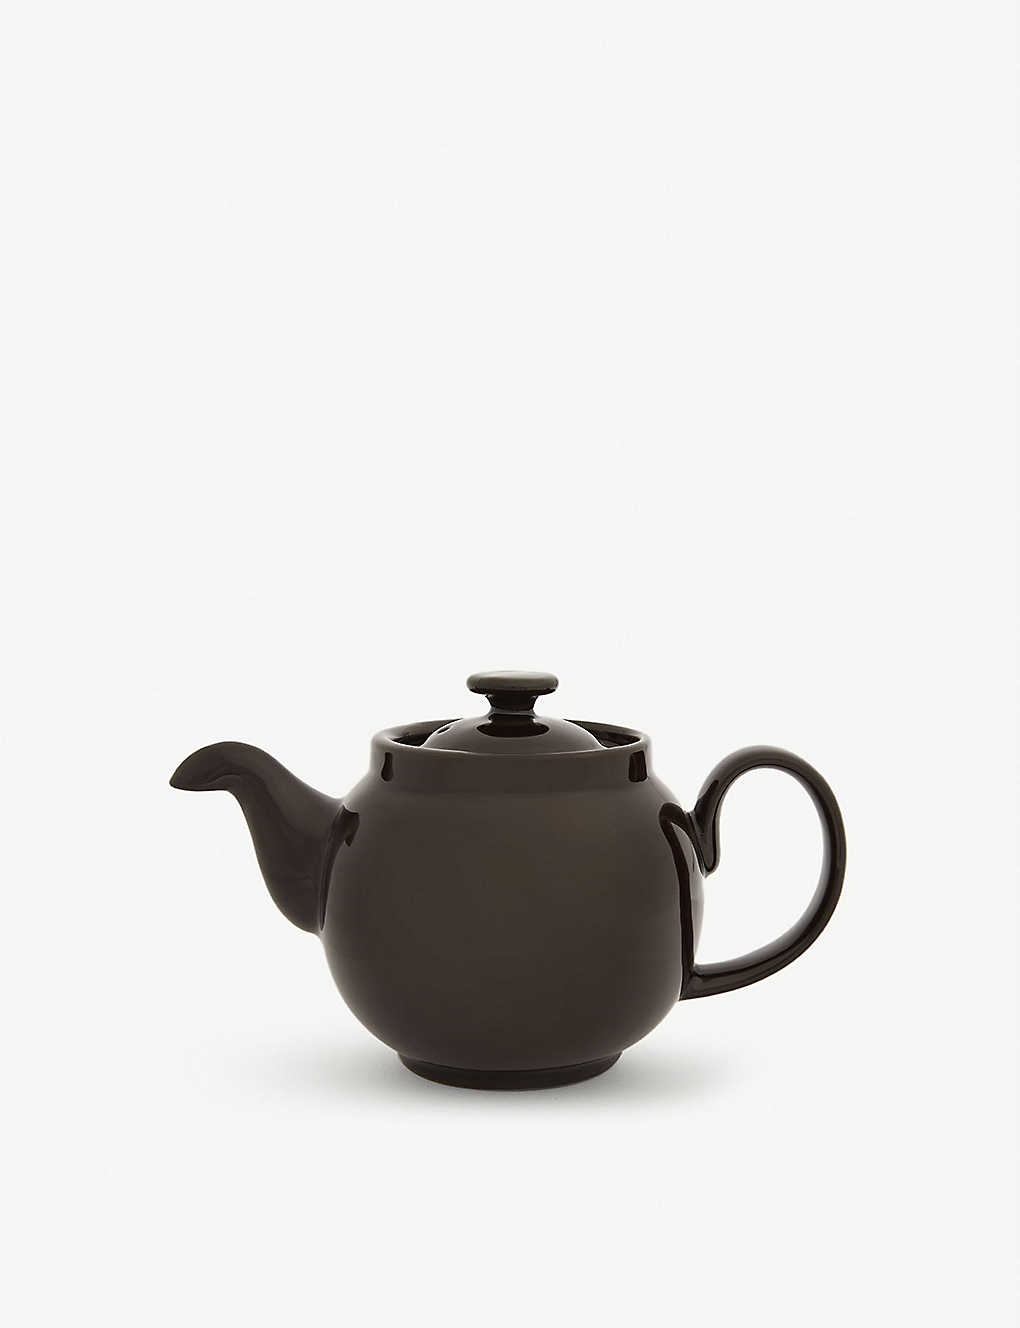 IAN MCINTYRE: Brown Betty ceramic teapot 17cm